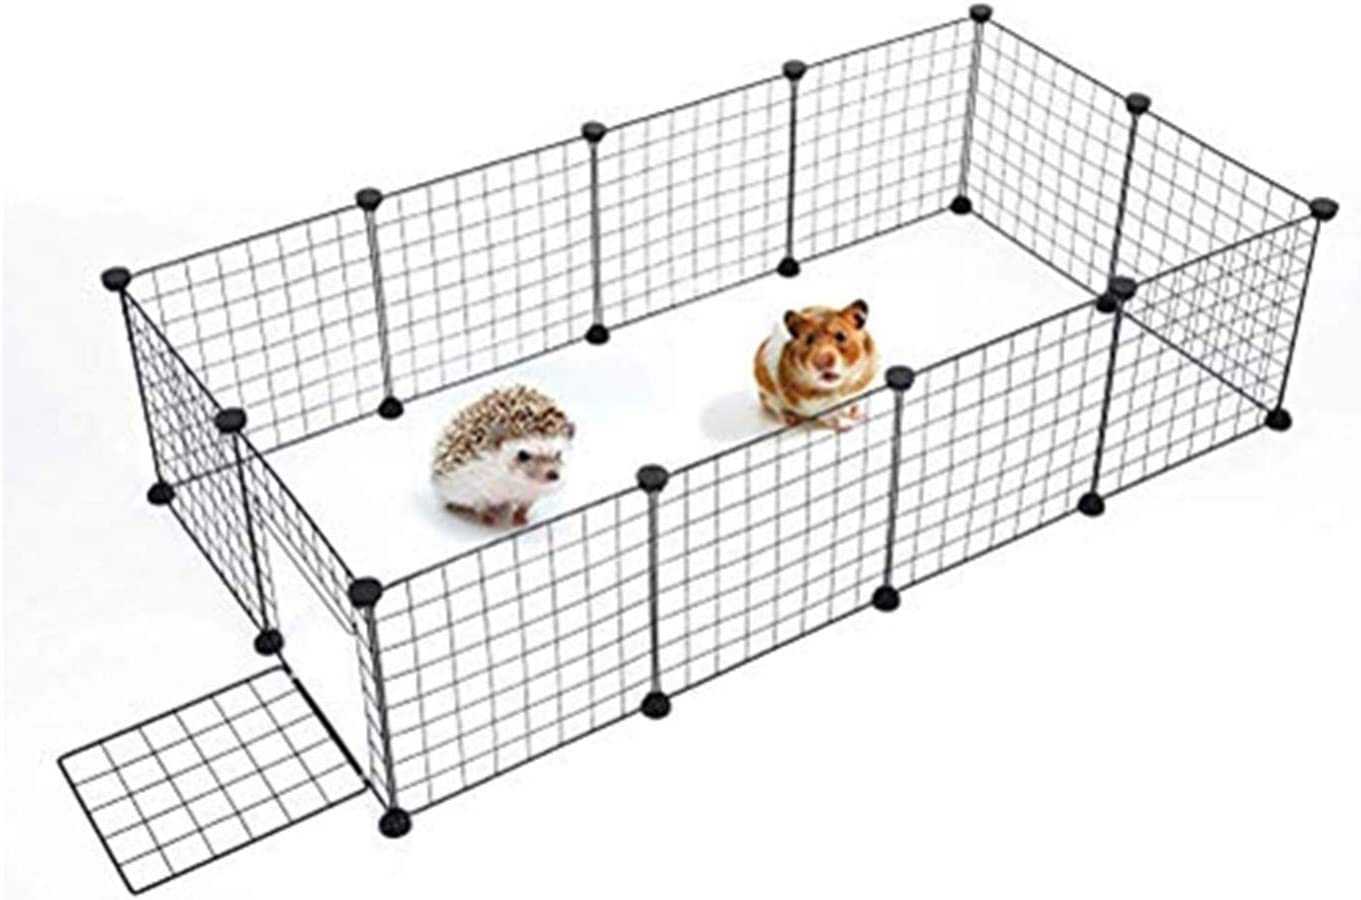 Cocoarm Pet playpen for Department store Small Animal Outlet SALE Kennel Puppy DIY M Portable